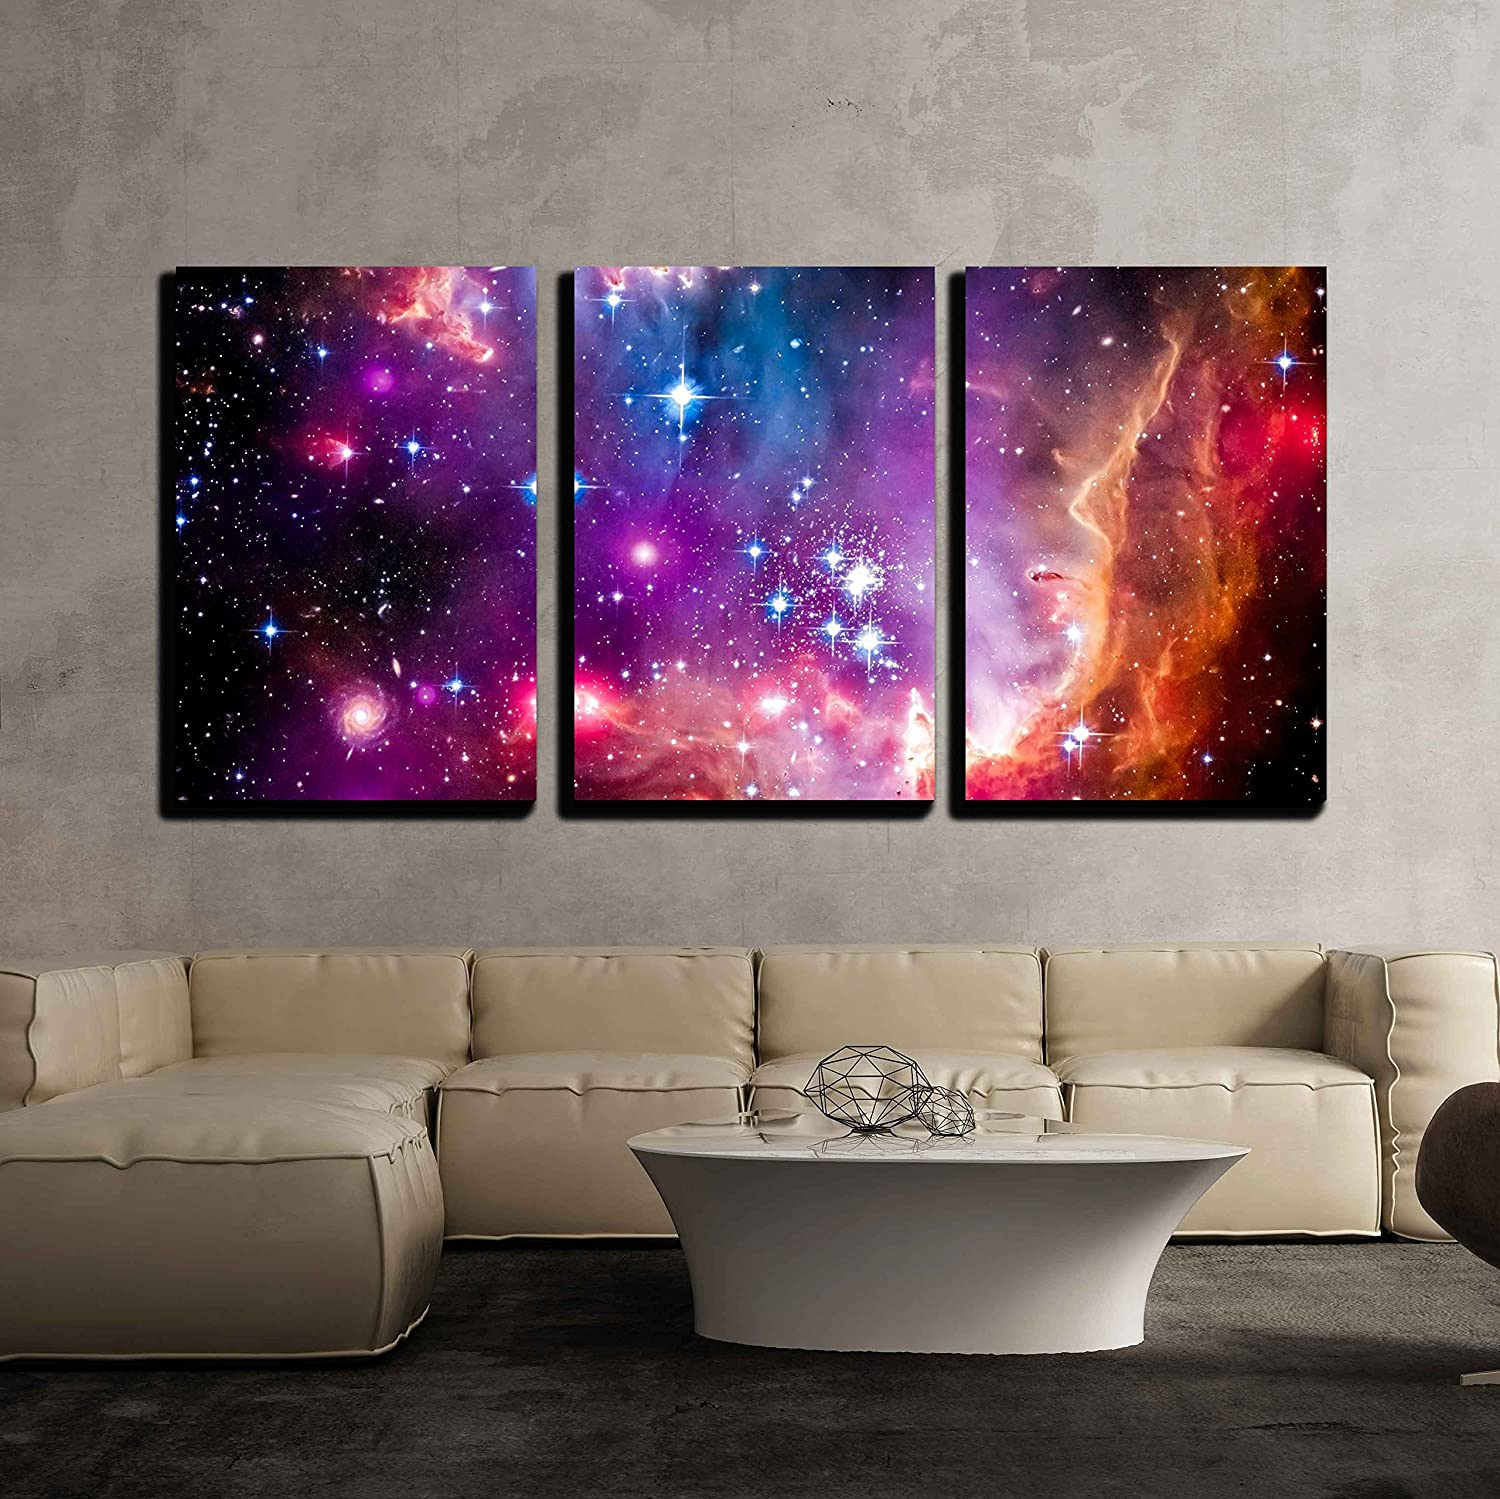 """wall26 3 Piece Canvas Wall Art - The Magellanic Cloud is a Dwarf Galaxy and a Galactic Neighbor of The Milky Way - Modern Home Decor Stretched and Framed Ready to Hang - 16""""x24""""x3 Panels"""